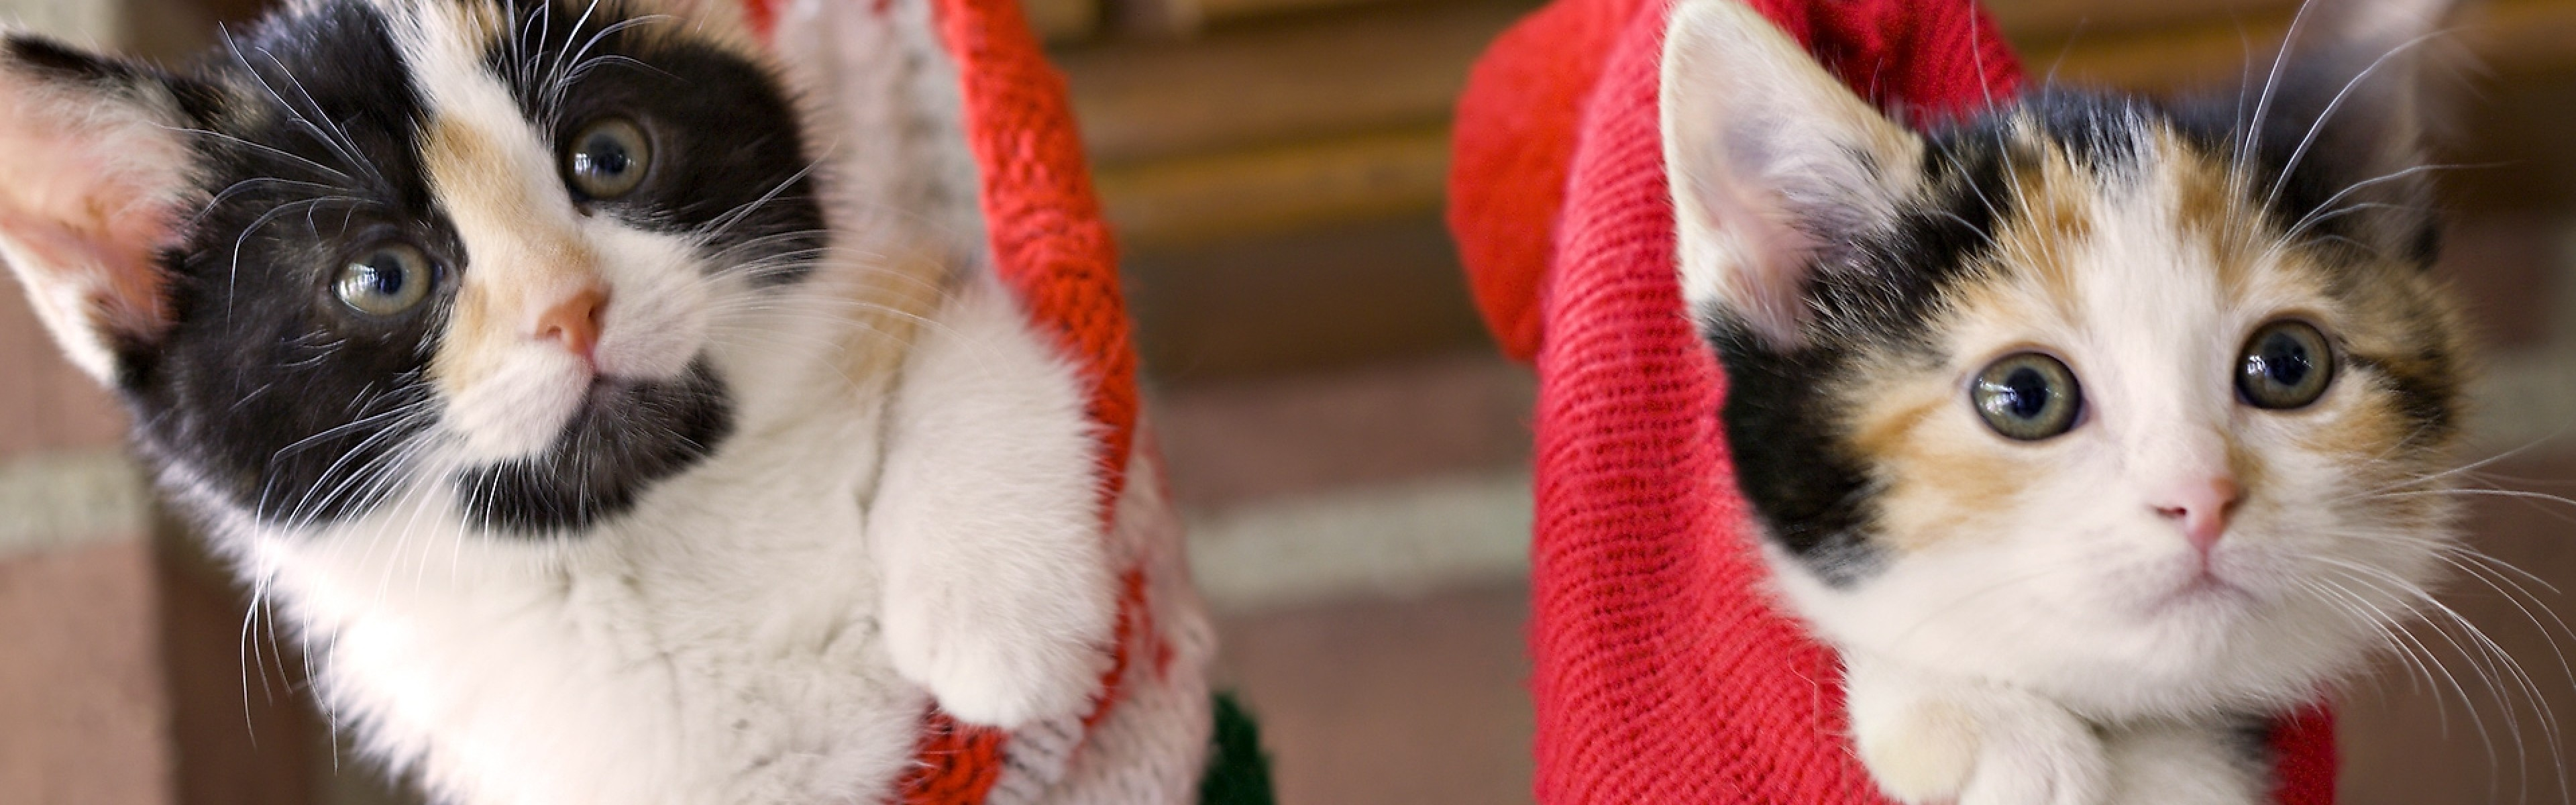 3840x1200  Wallpaper kittens, hang, socks, holiday, christmas, fluffy, couple